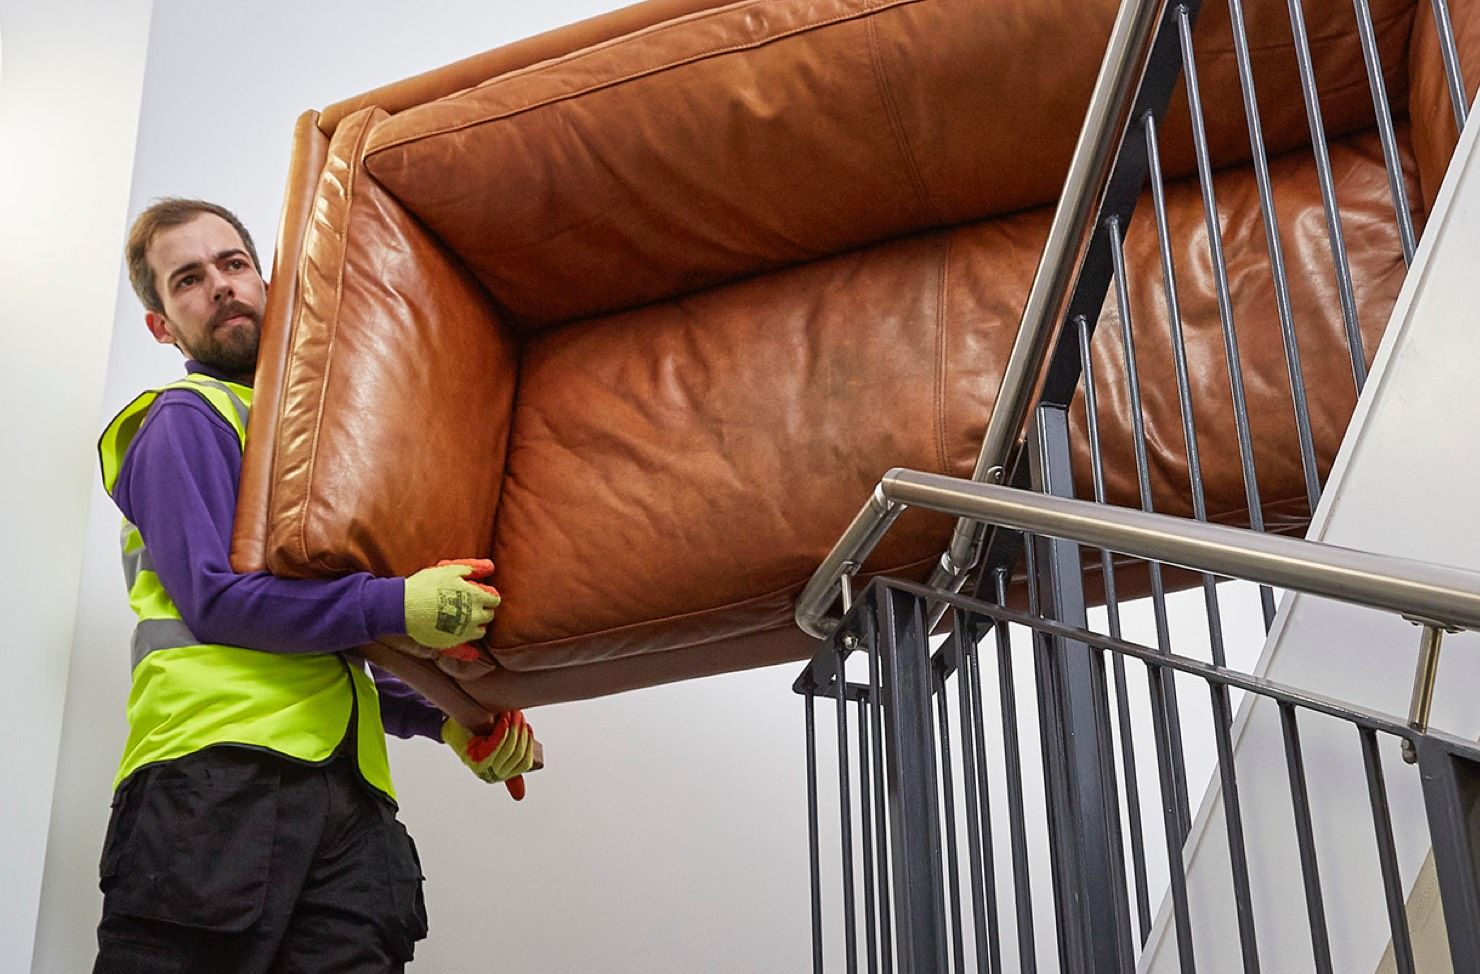 Waste operative carying a sofa downstairs